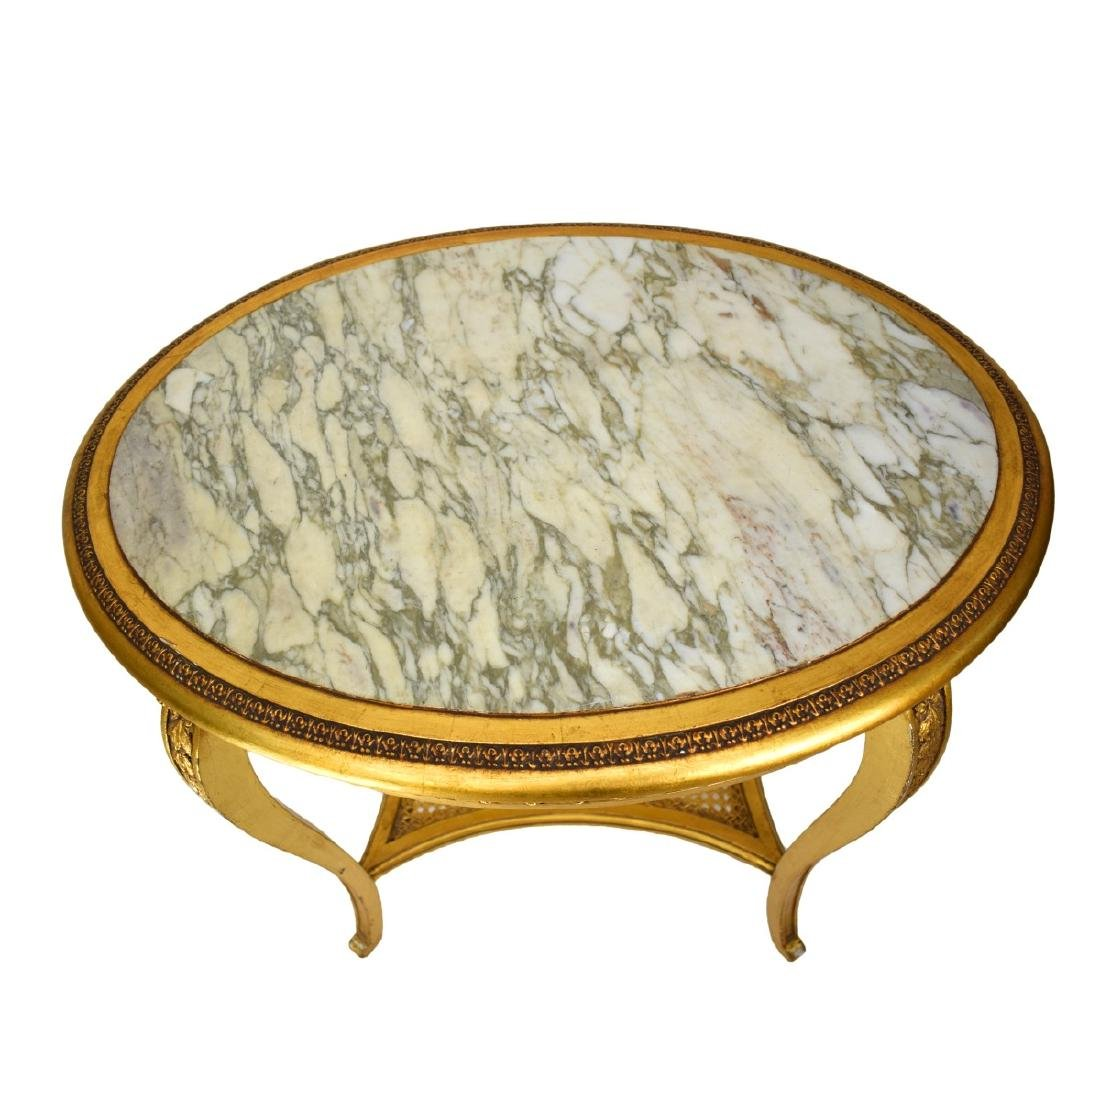 Italian Louis XVI Style Giltwood Marble Top Tables - 2